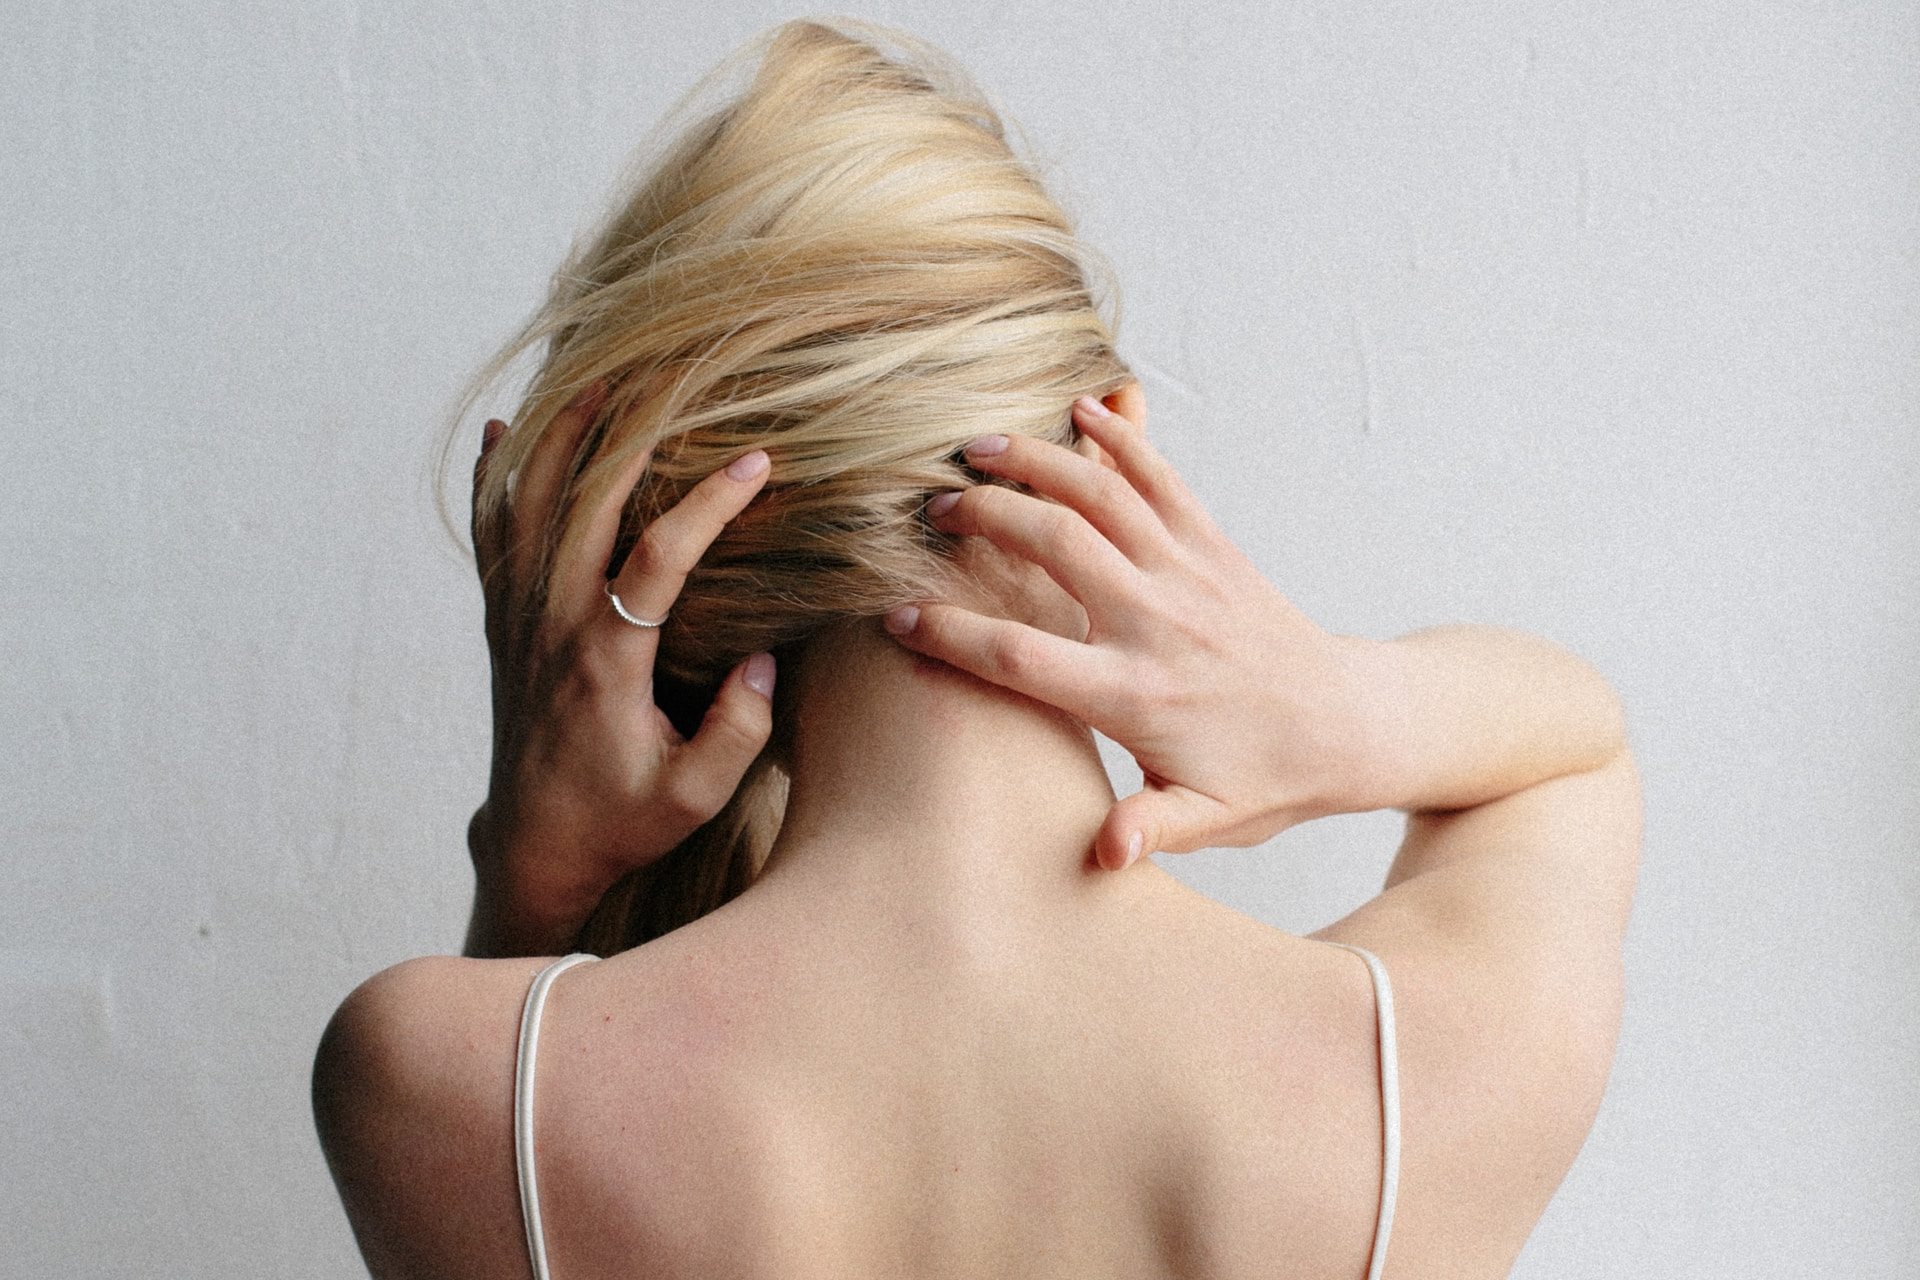 woman in white spaghetti strap top covering her face